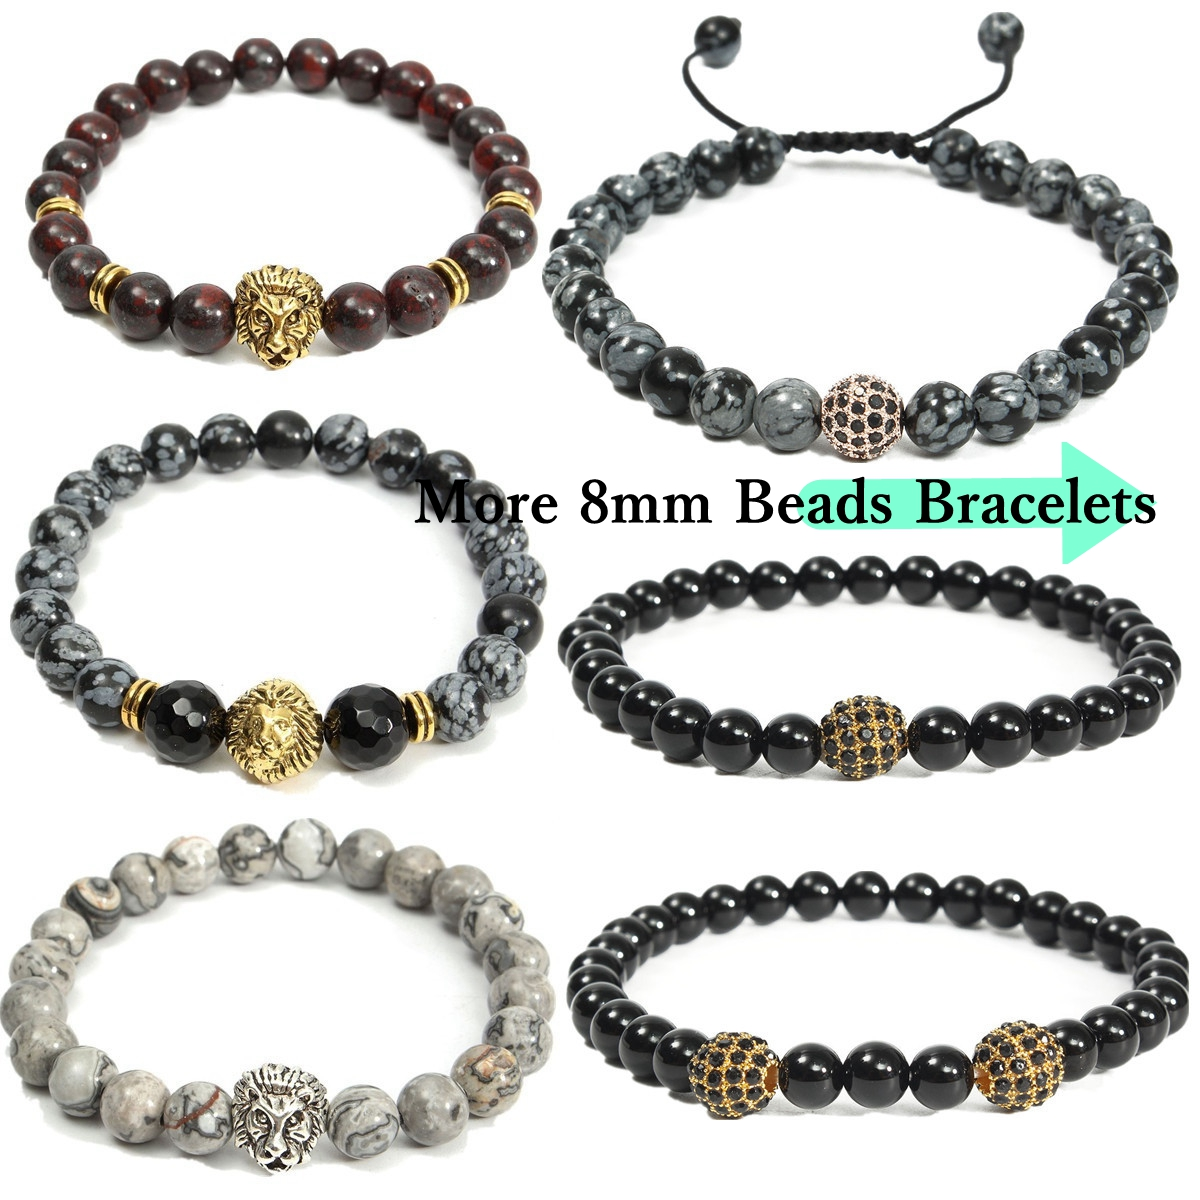 8mm Stretch Men Bracelet Natural Spot Stone Beads Bangle Chain